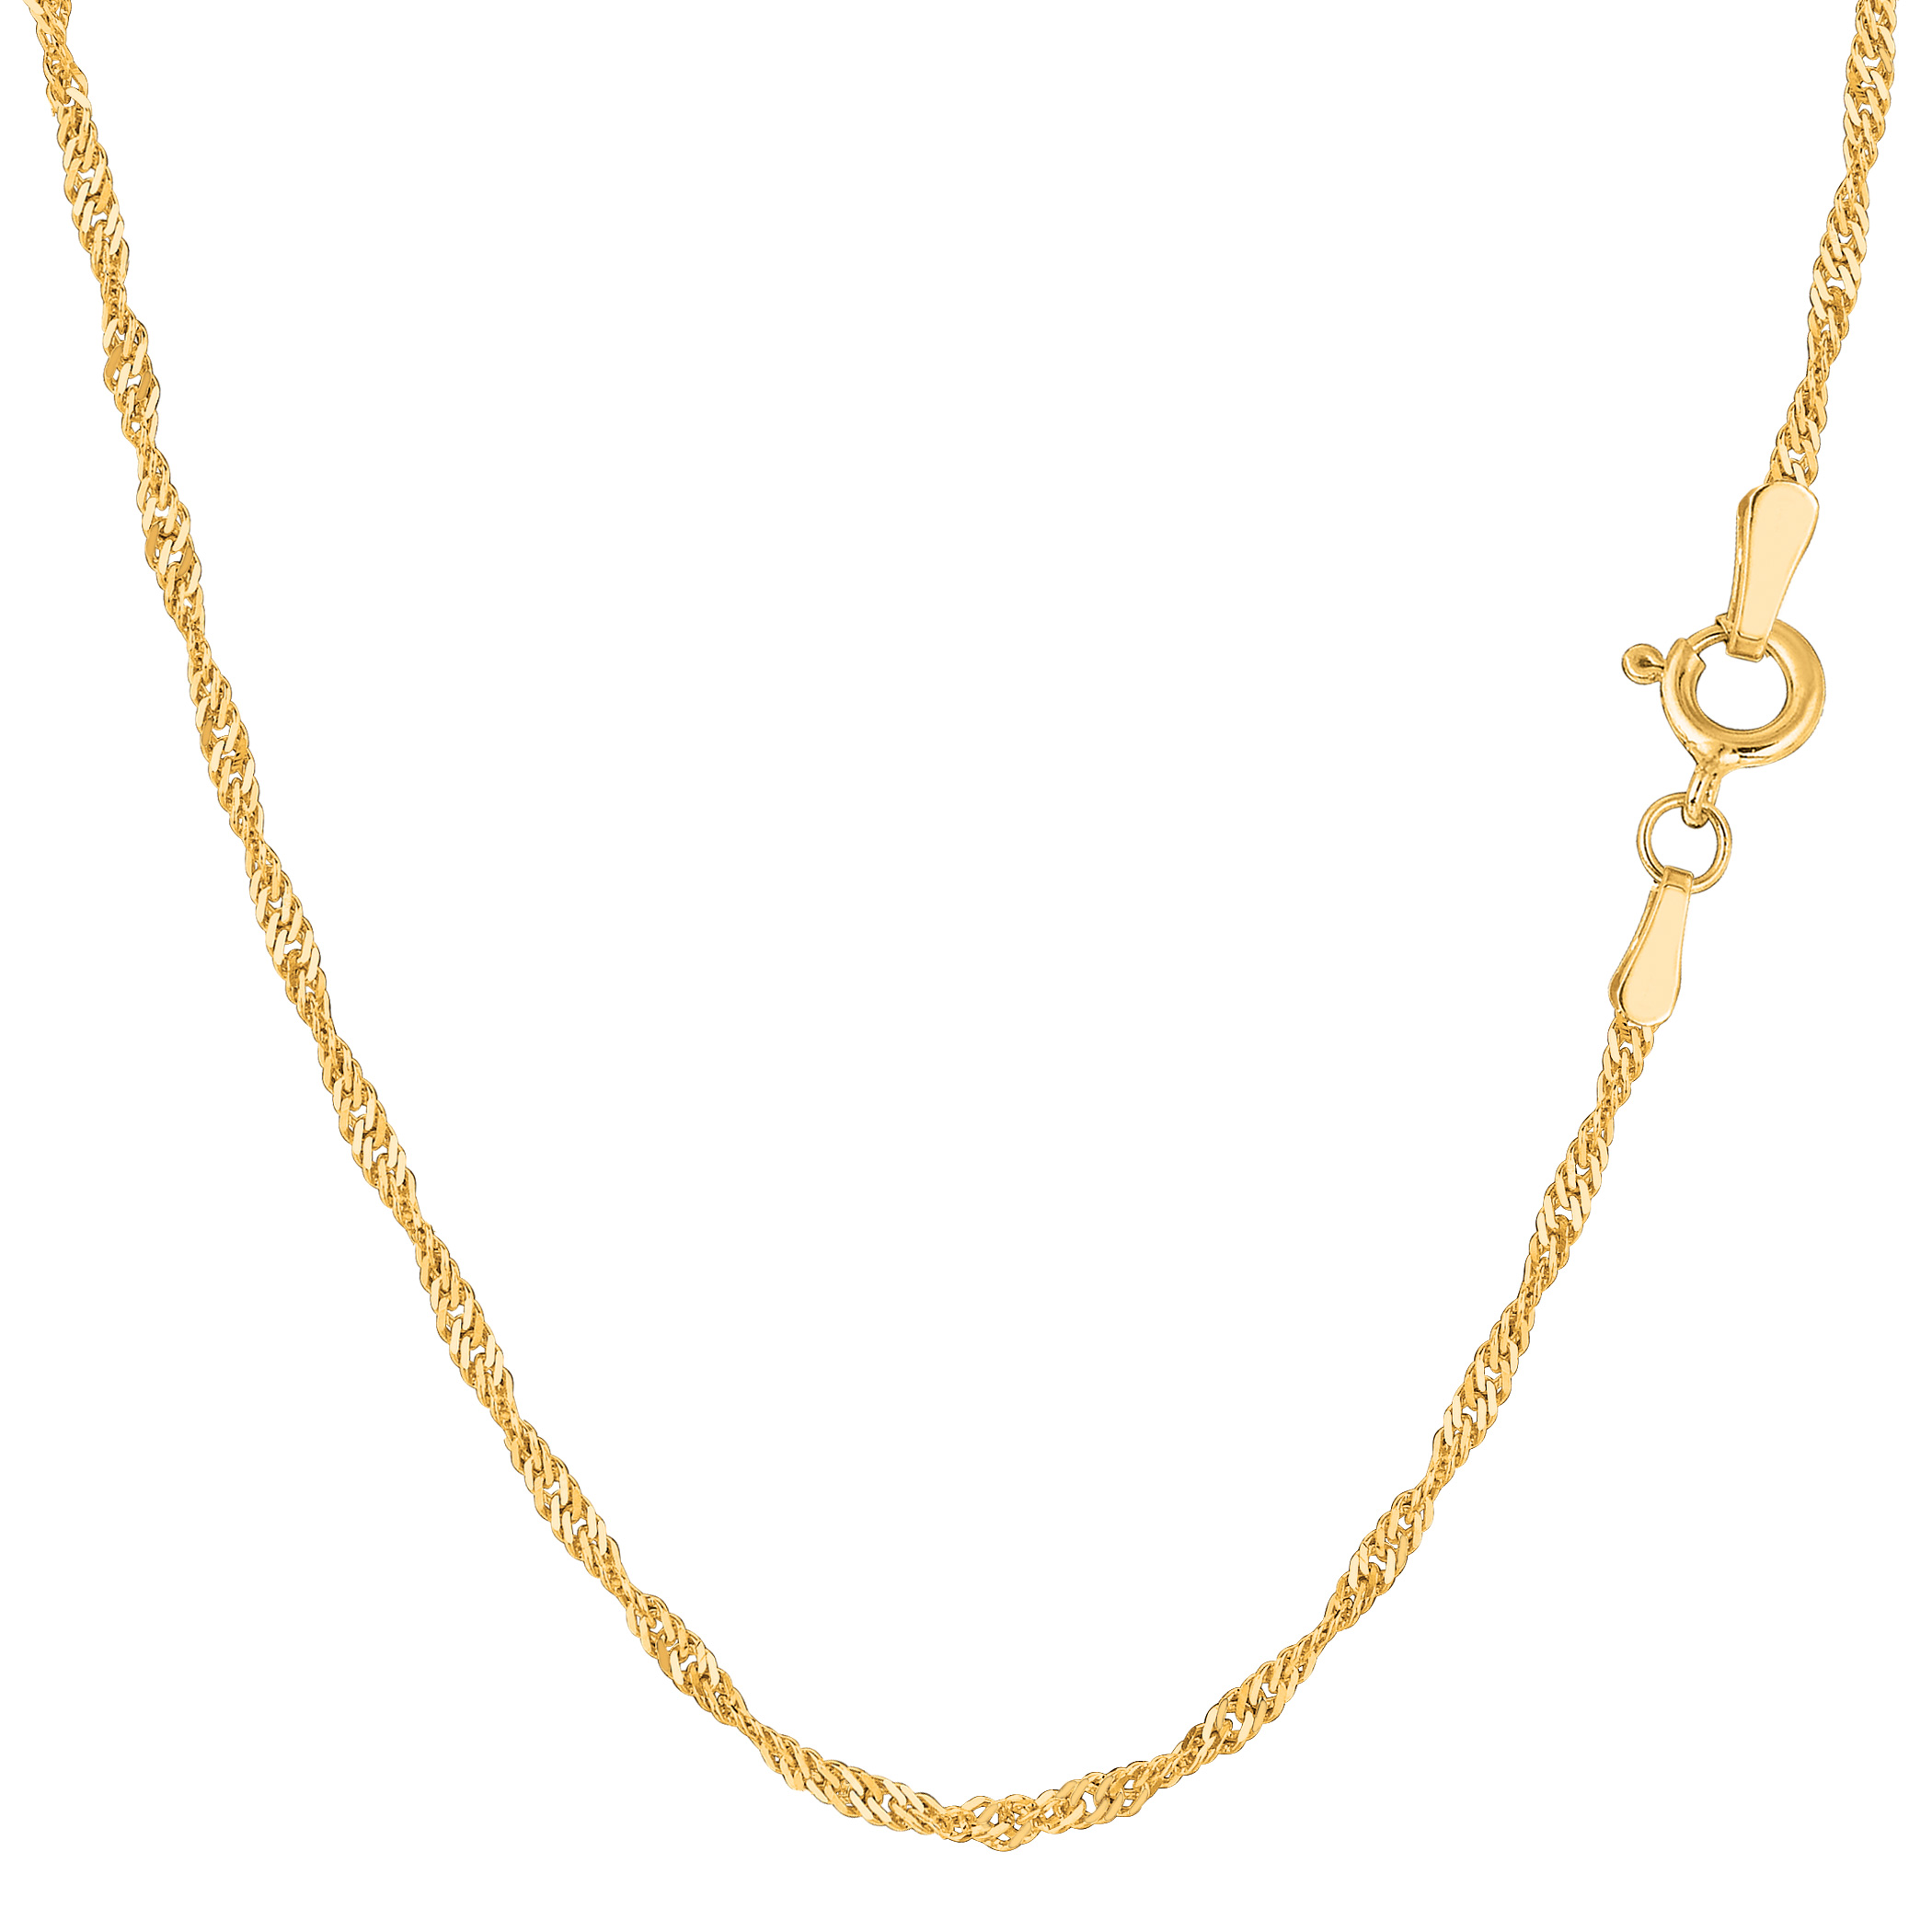 14k Yellow Gold Singapore Chain Bracelet, 1.7mm, 7″